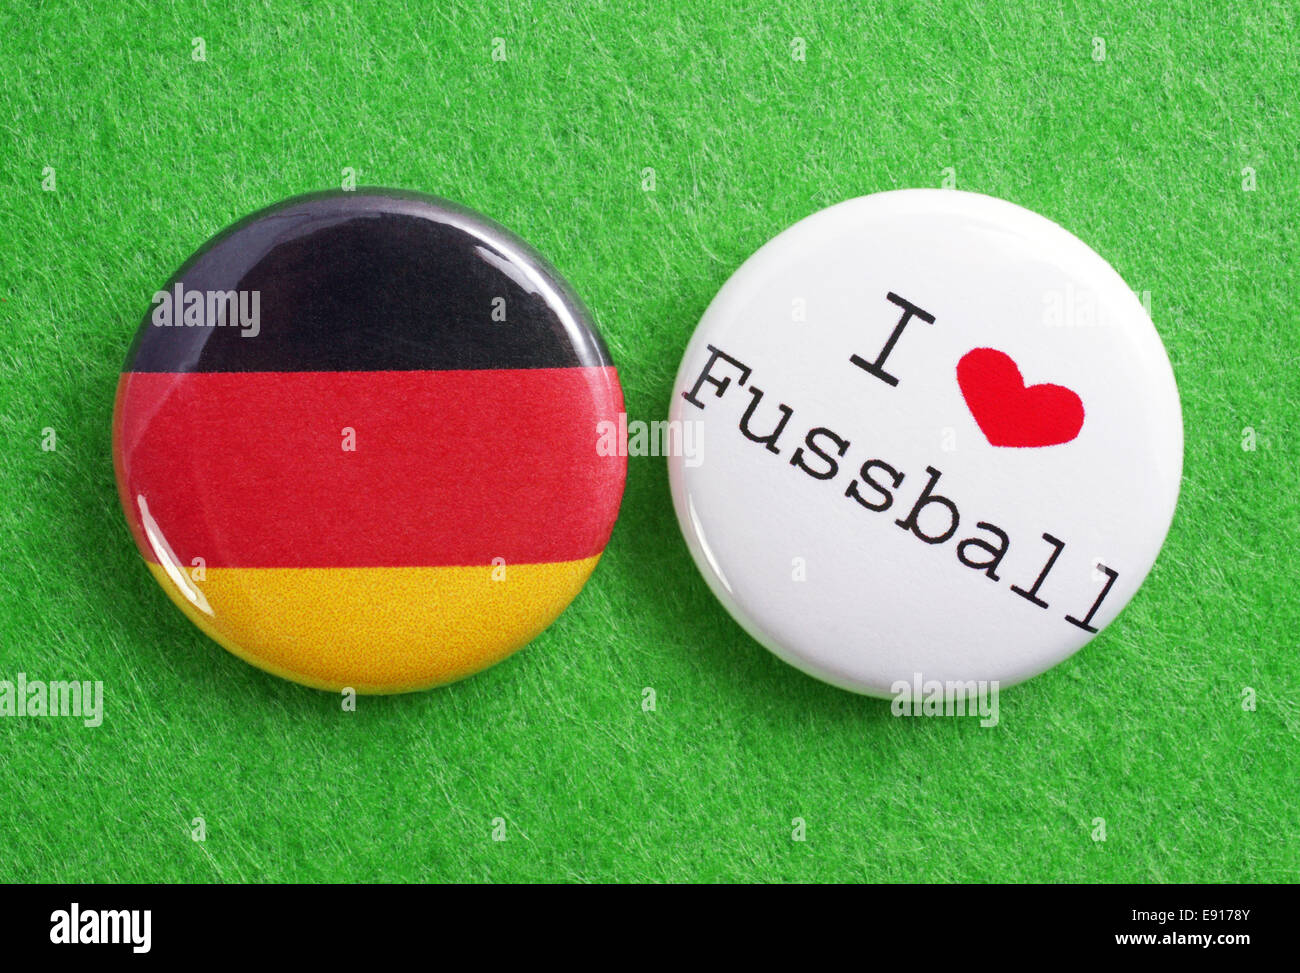 2 Buttons: I love Fussball and Germany - Stock Image